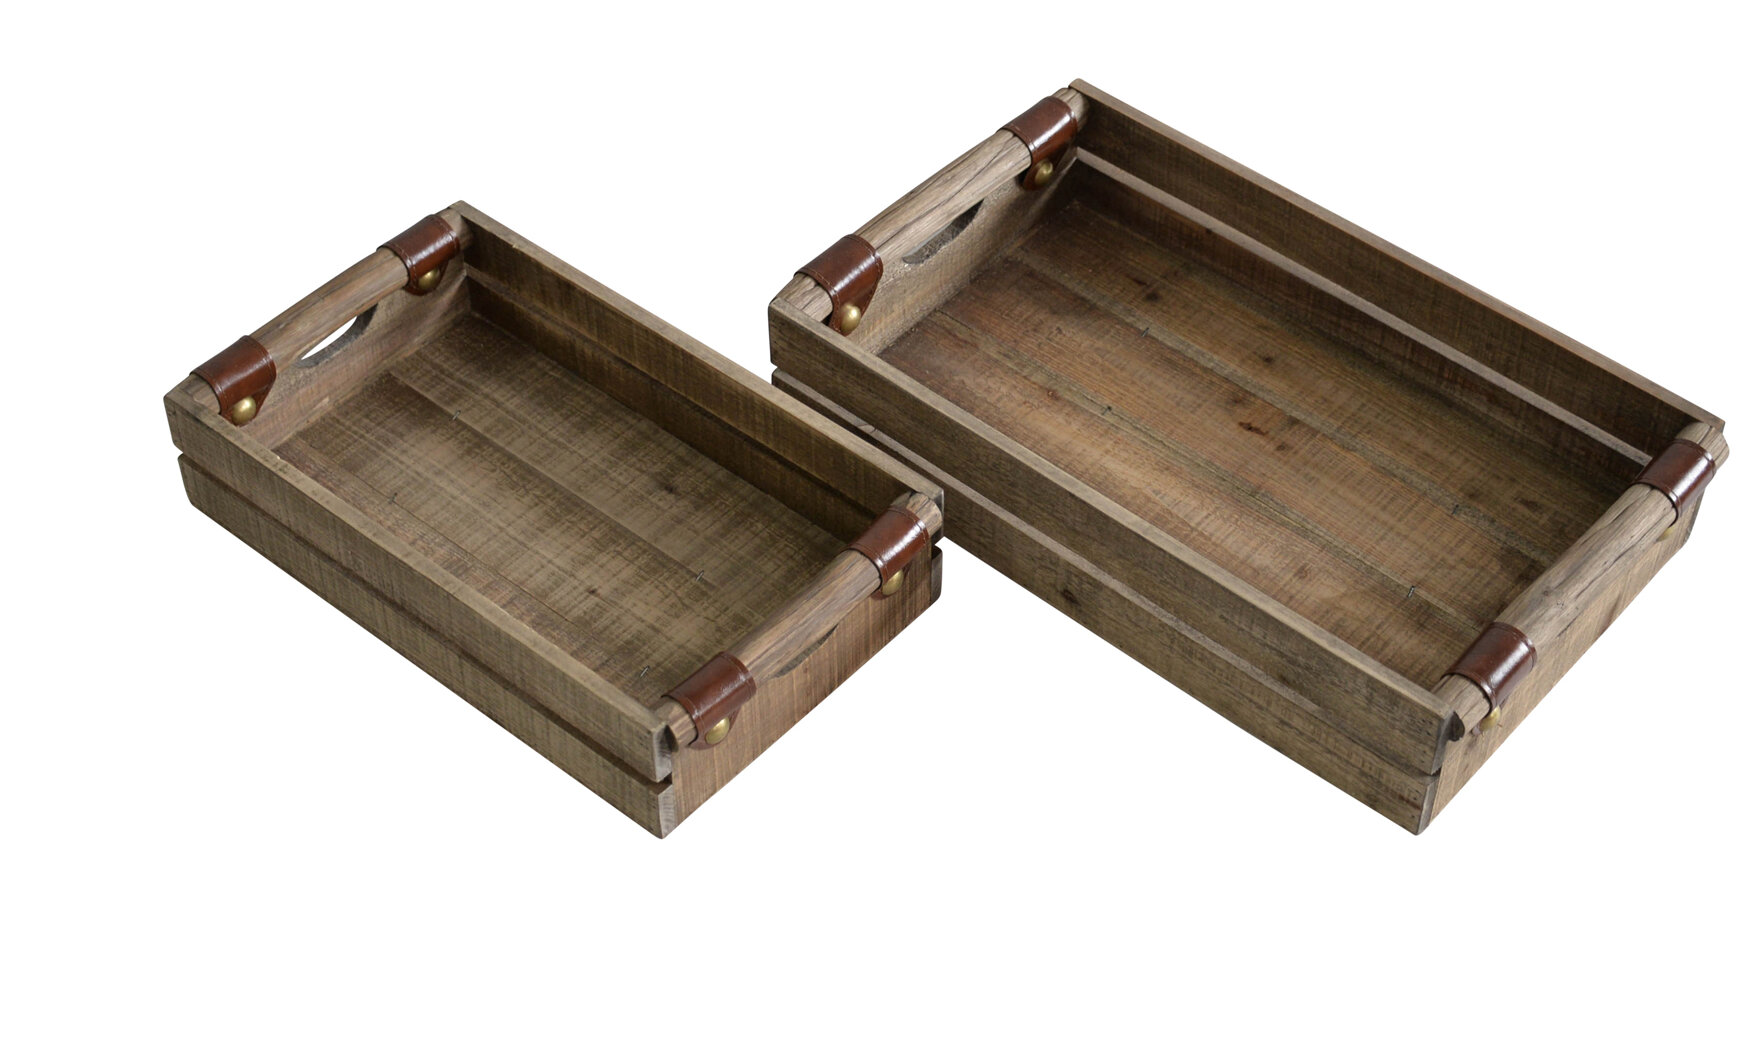 Trays Set Of 2 Brown Wood Nesting Breakfast Serving Tray W Twisted Rope Handles Home Garden Mbln Org